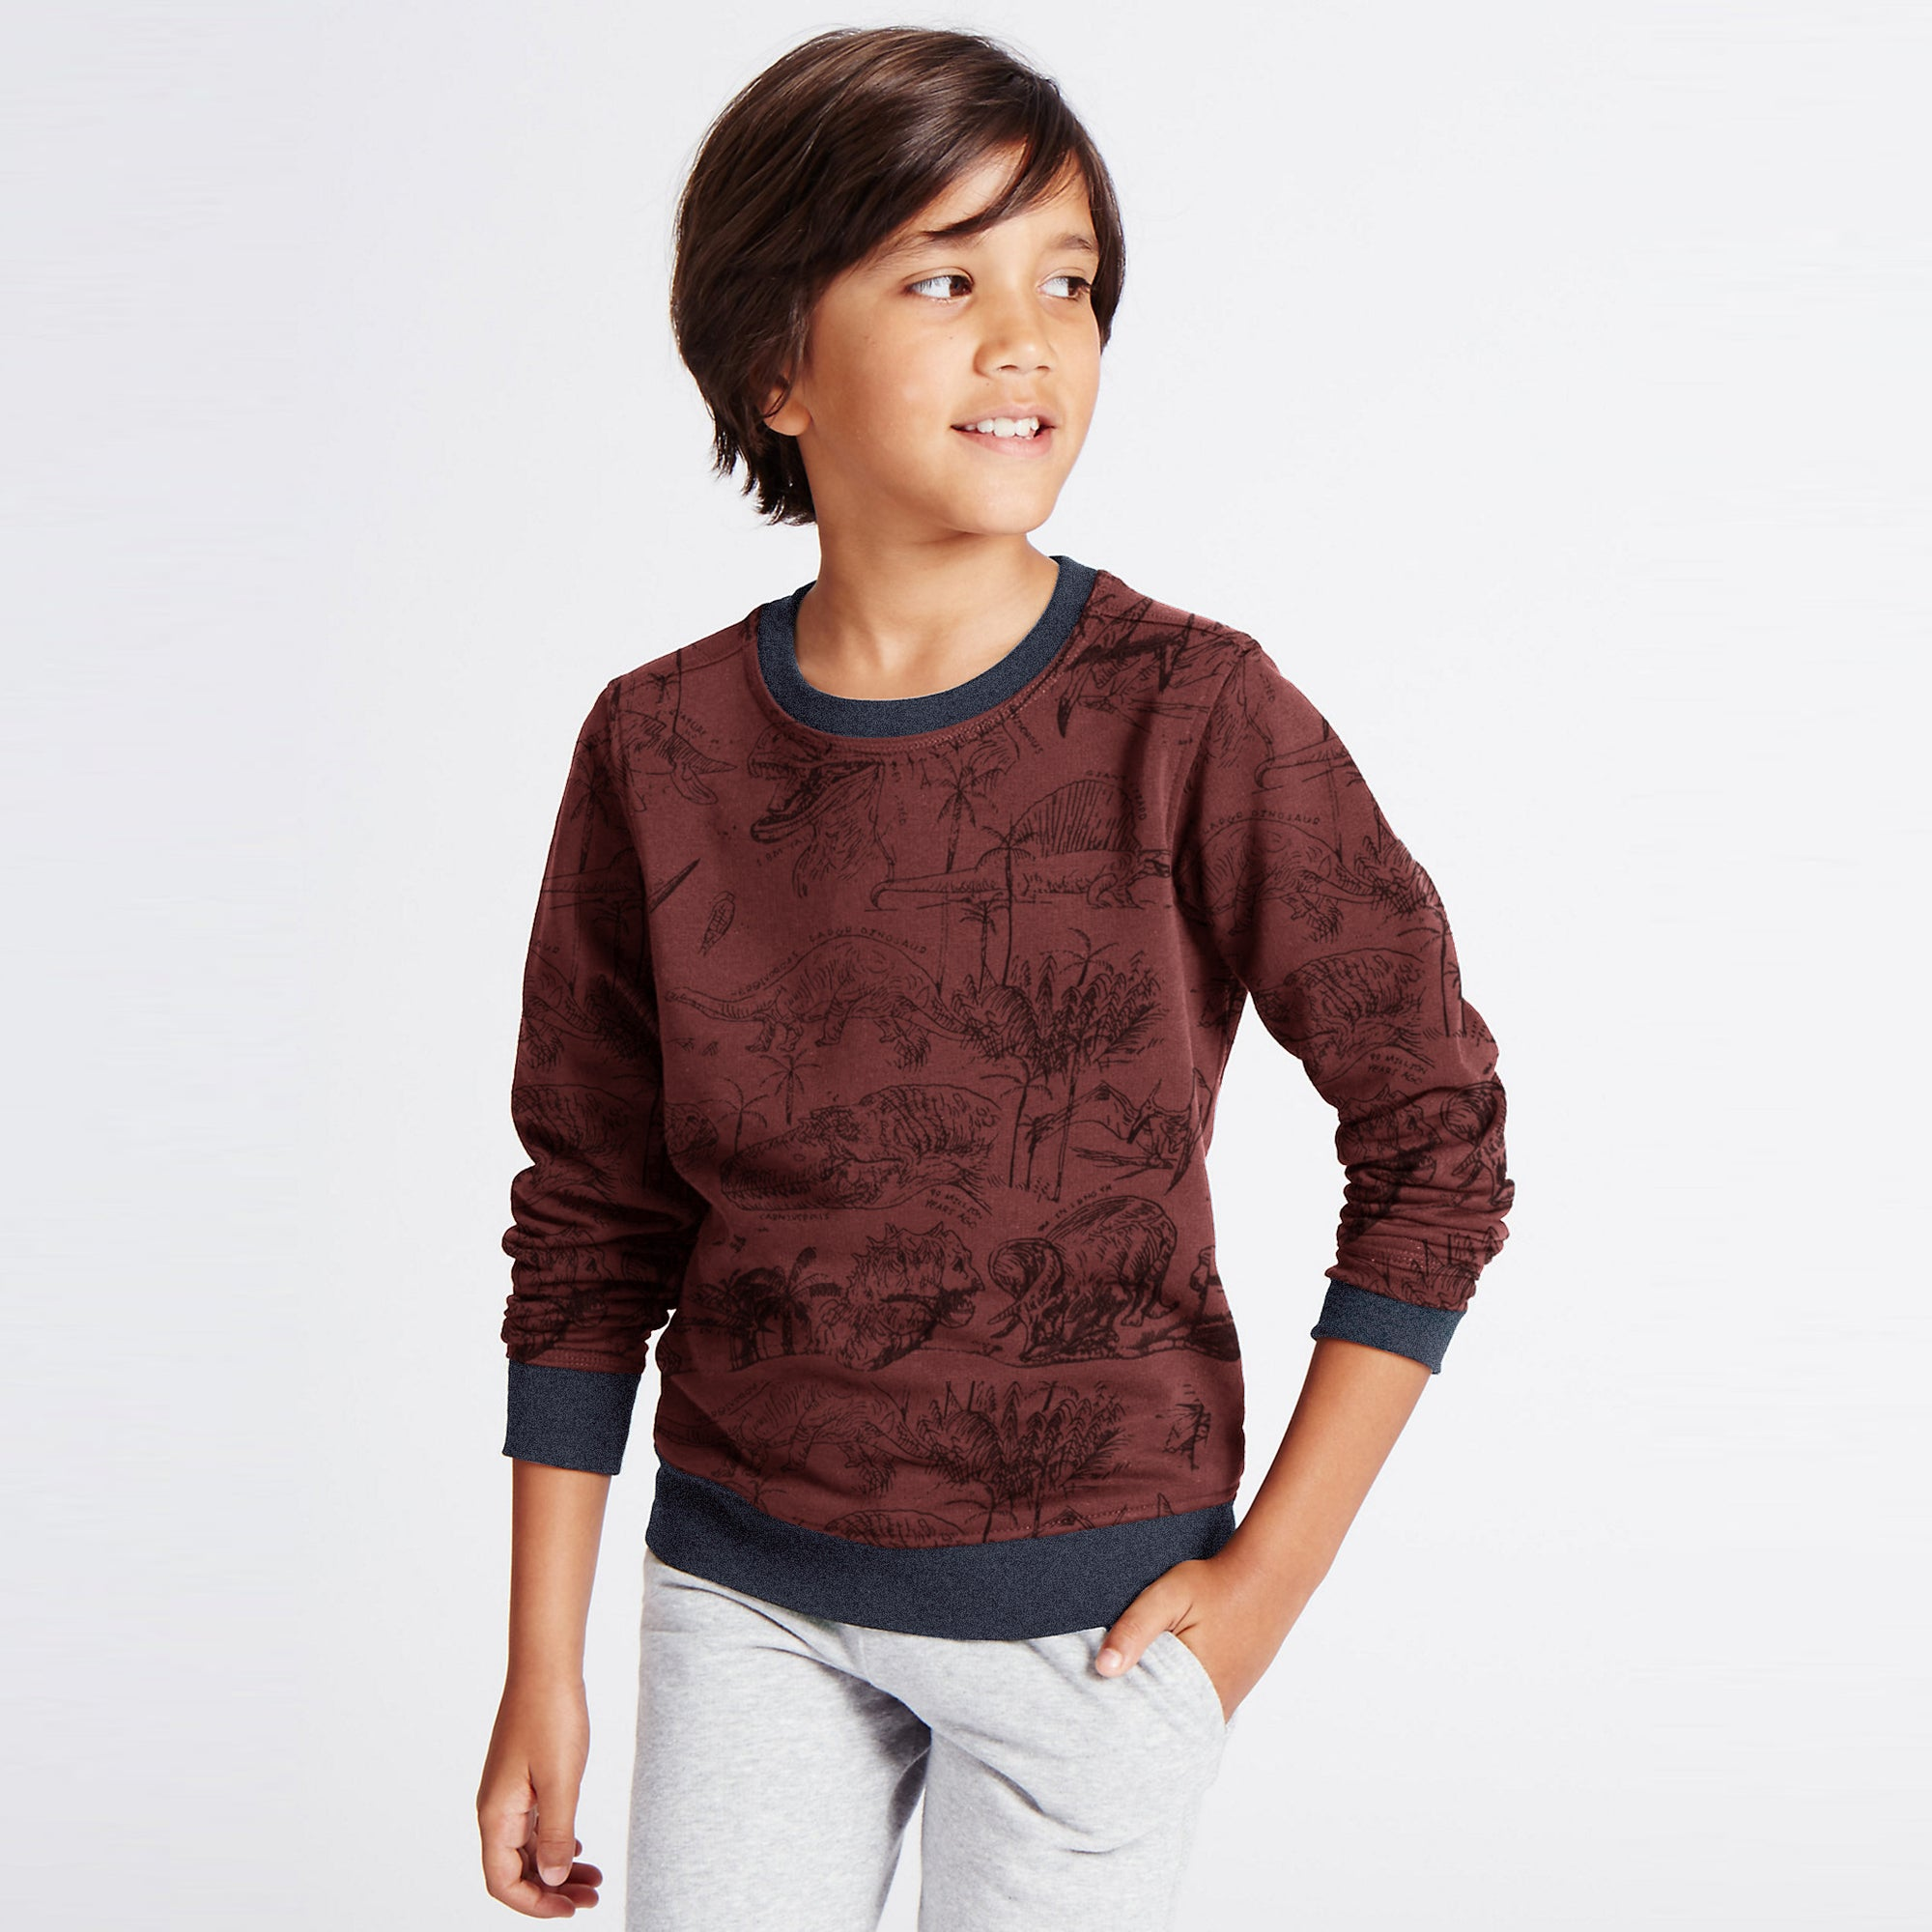 Tommy Hilfiger Fleece Crew Neck Sweatshirt For Kids-Light Maroon With Allover Print-SP1376